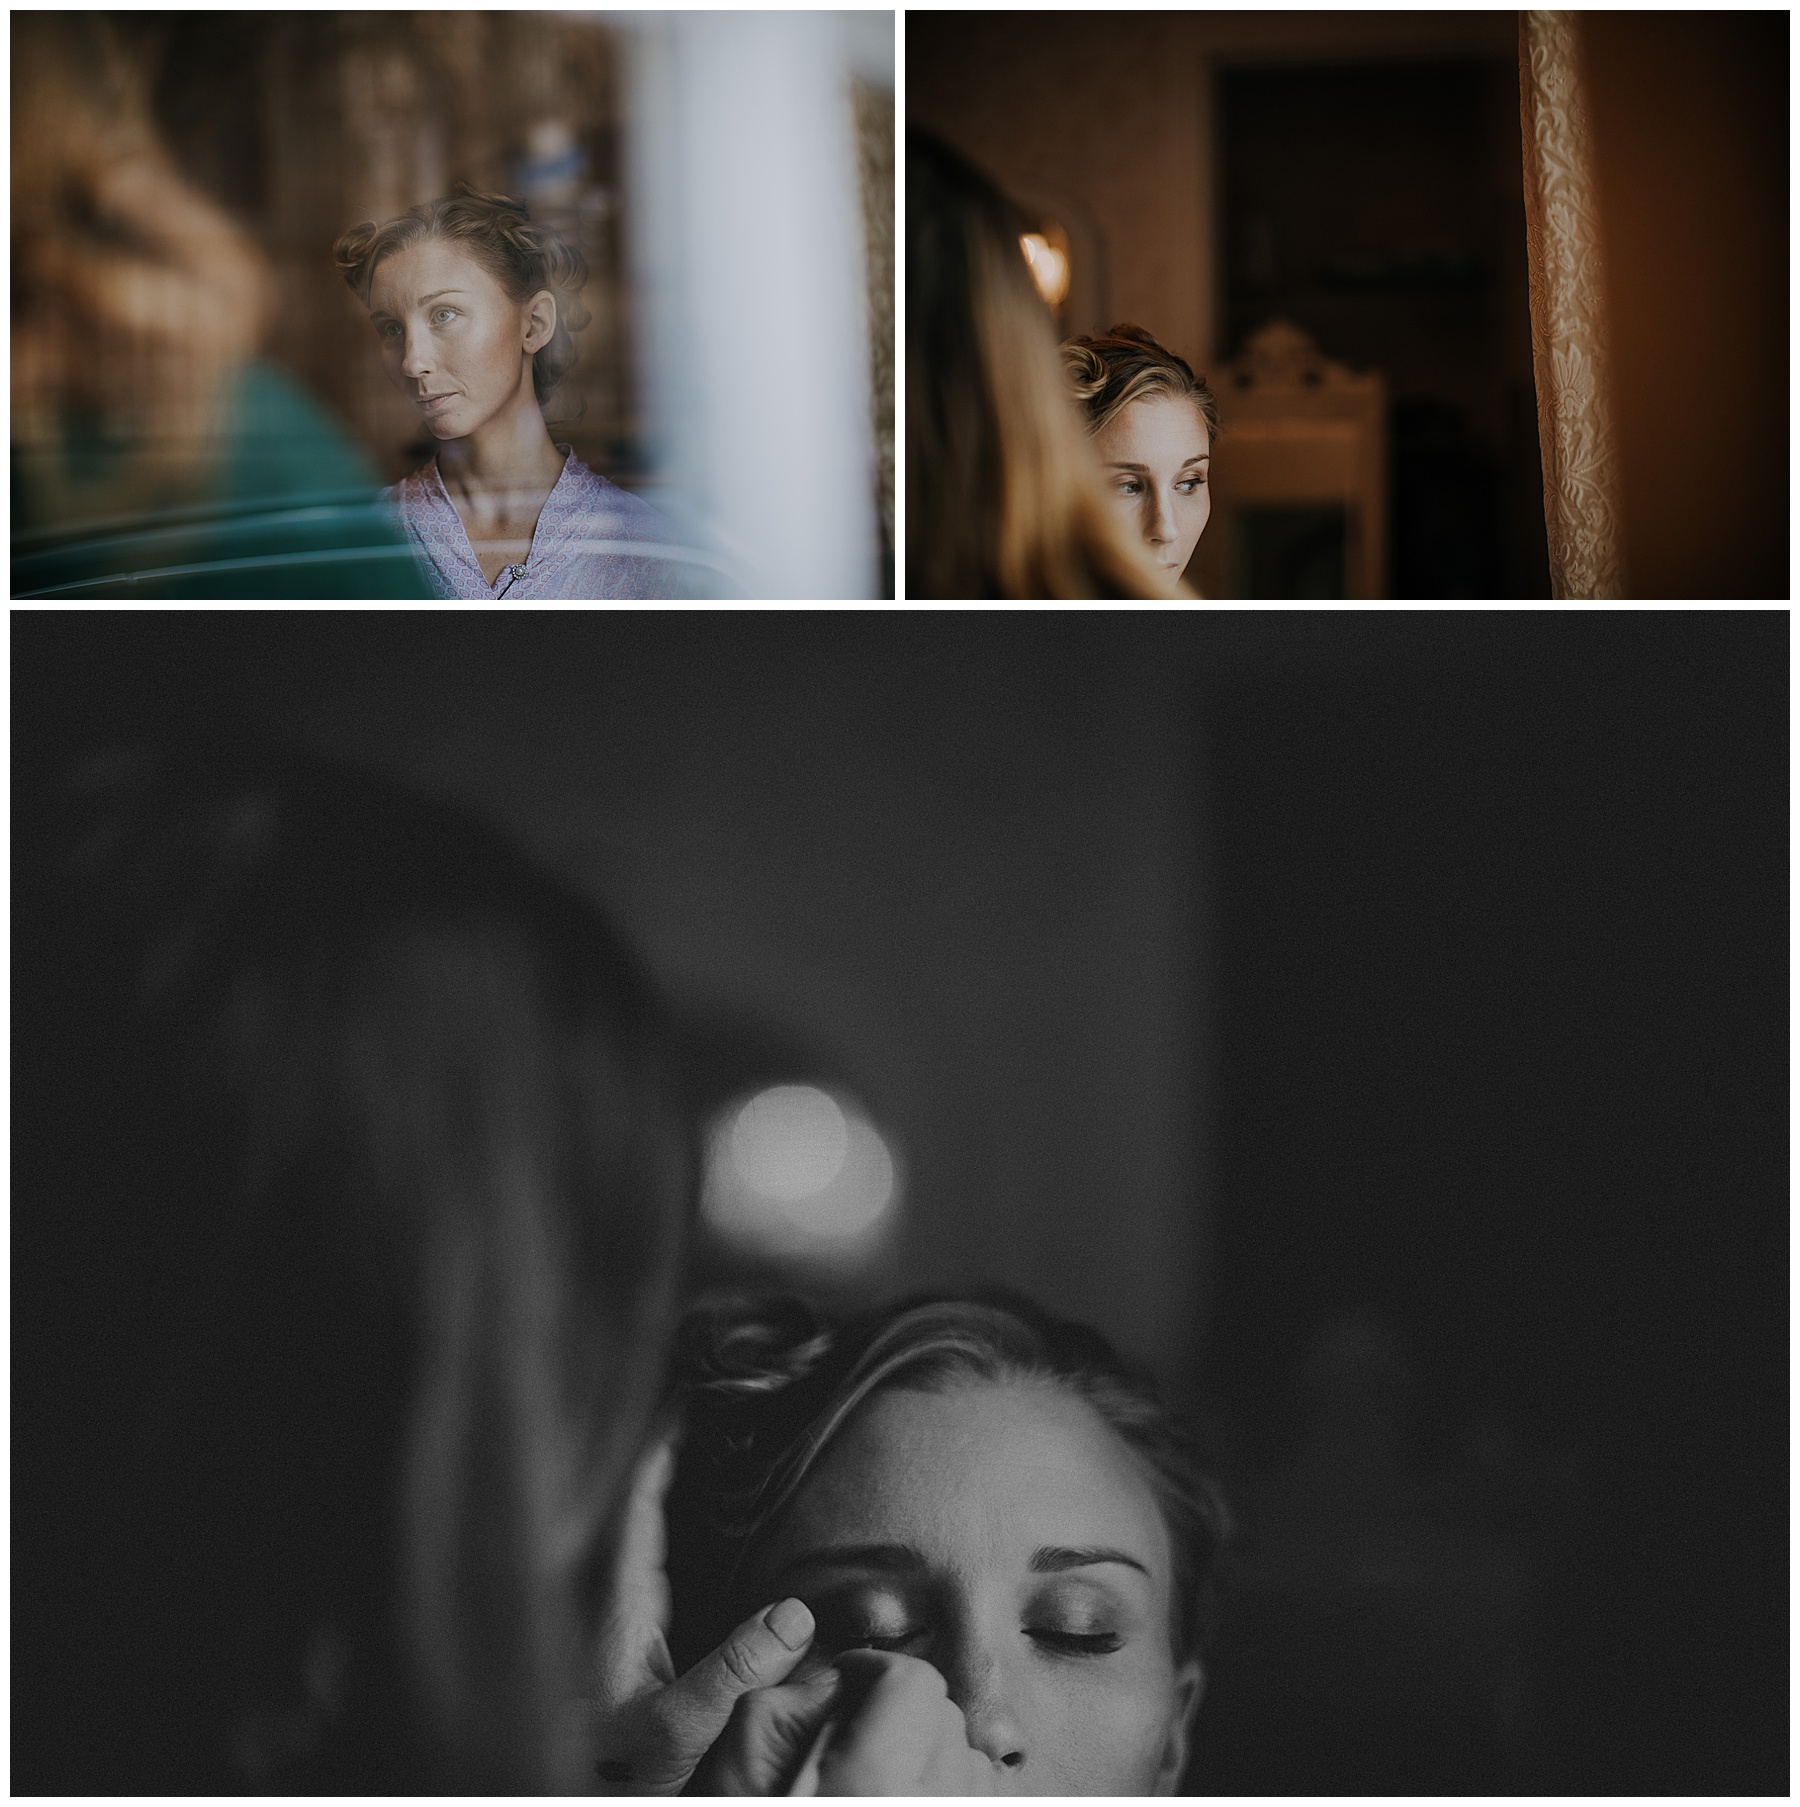 a woman looks out the window as she has her makeup done.